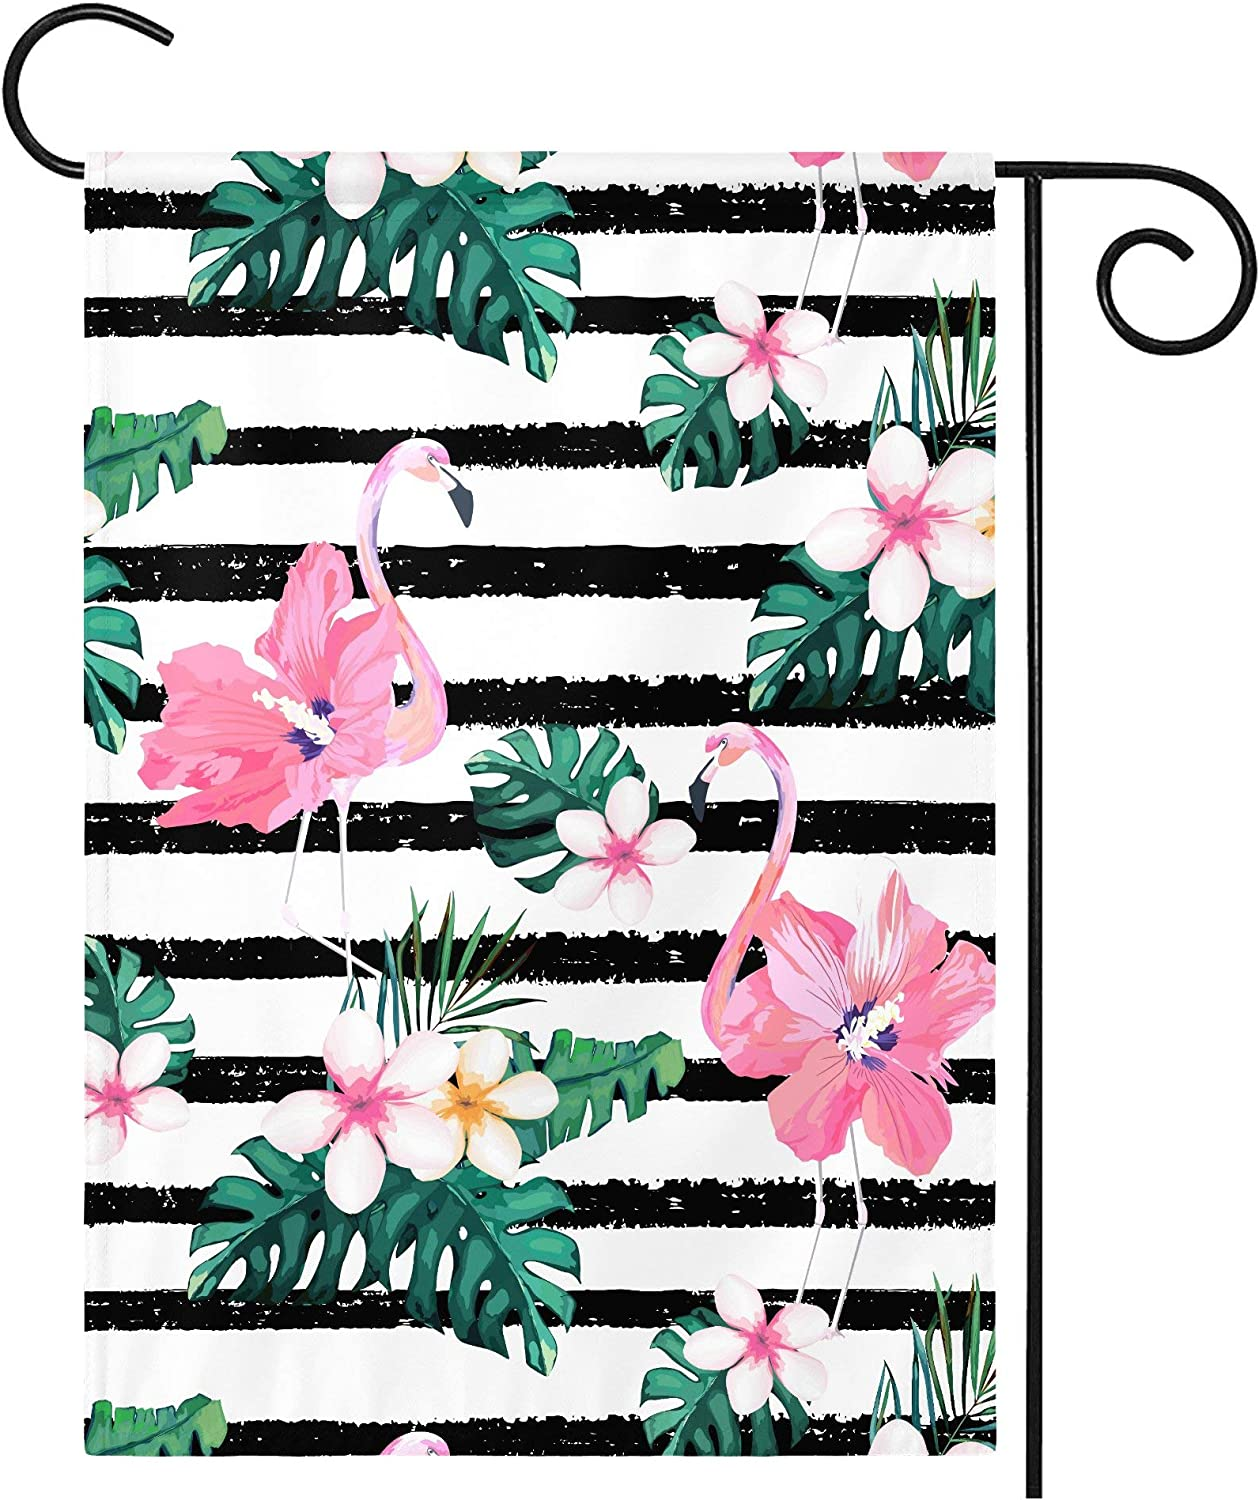 Garden Flag House Yard Watercolor tropical leaves flamingo Decorative Vertical Double Sided Weather Resistant Stitched Outdoor Flags Holiday Spring Outside Home Dog Cat Camper Lawn 12.5 x 18 inch